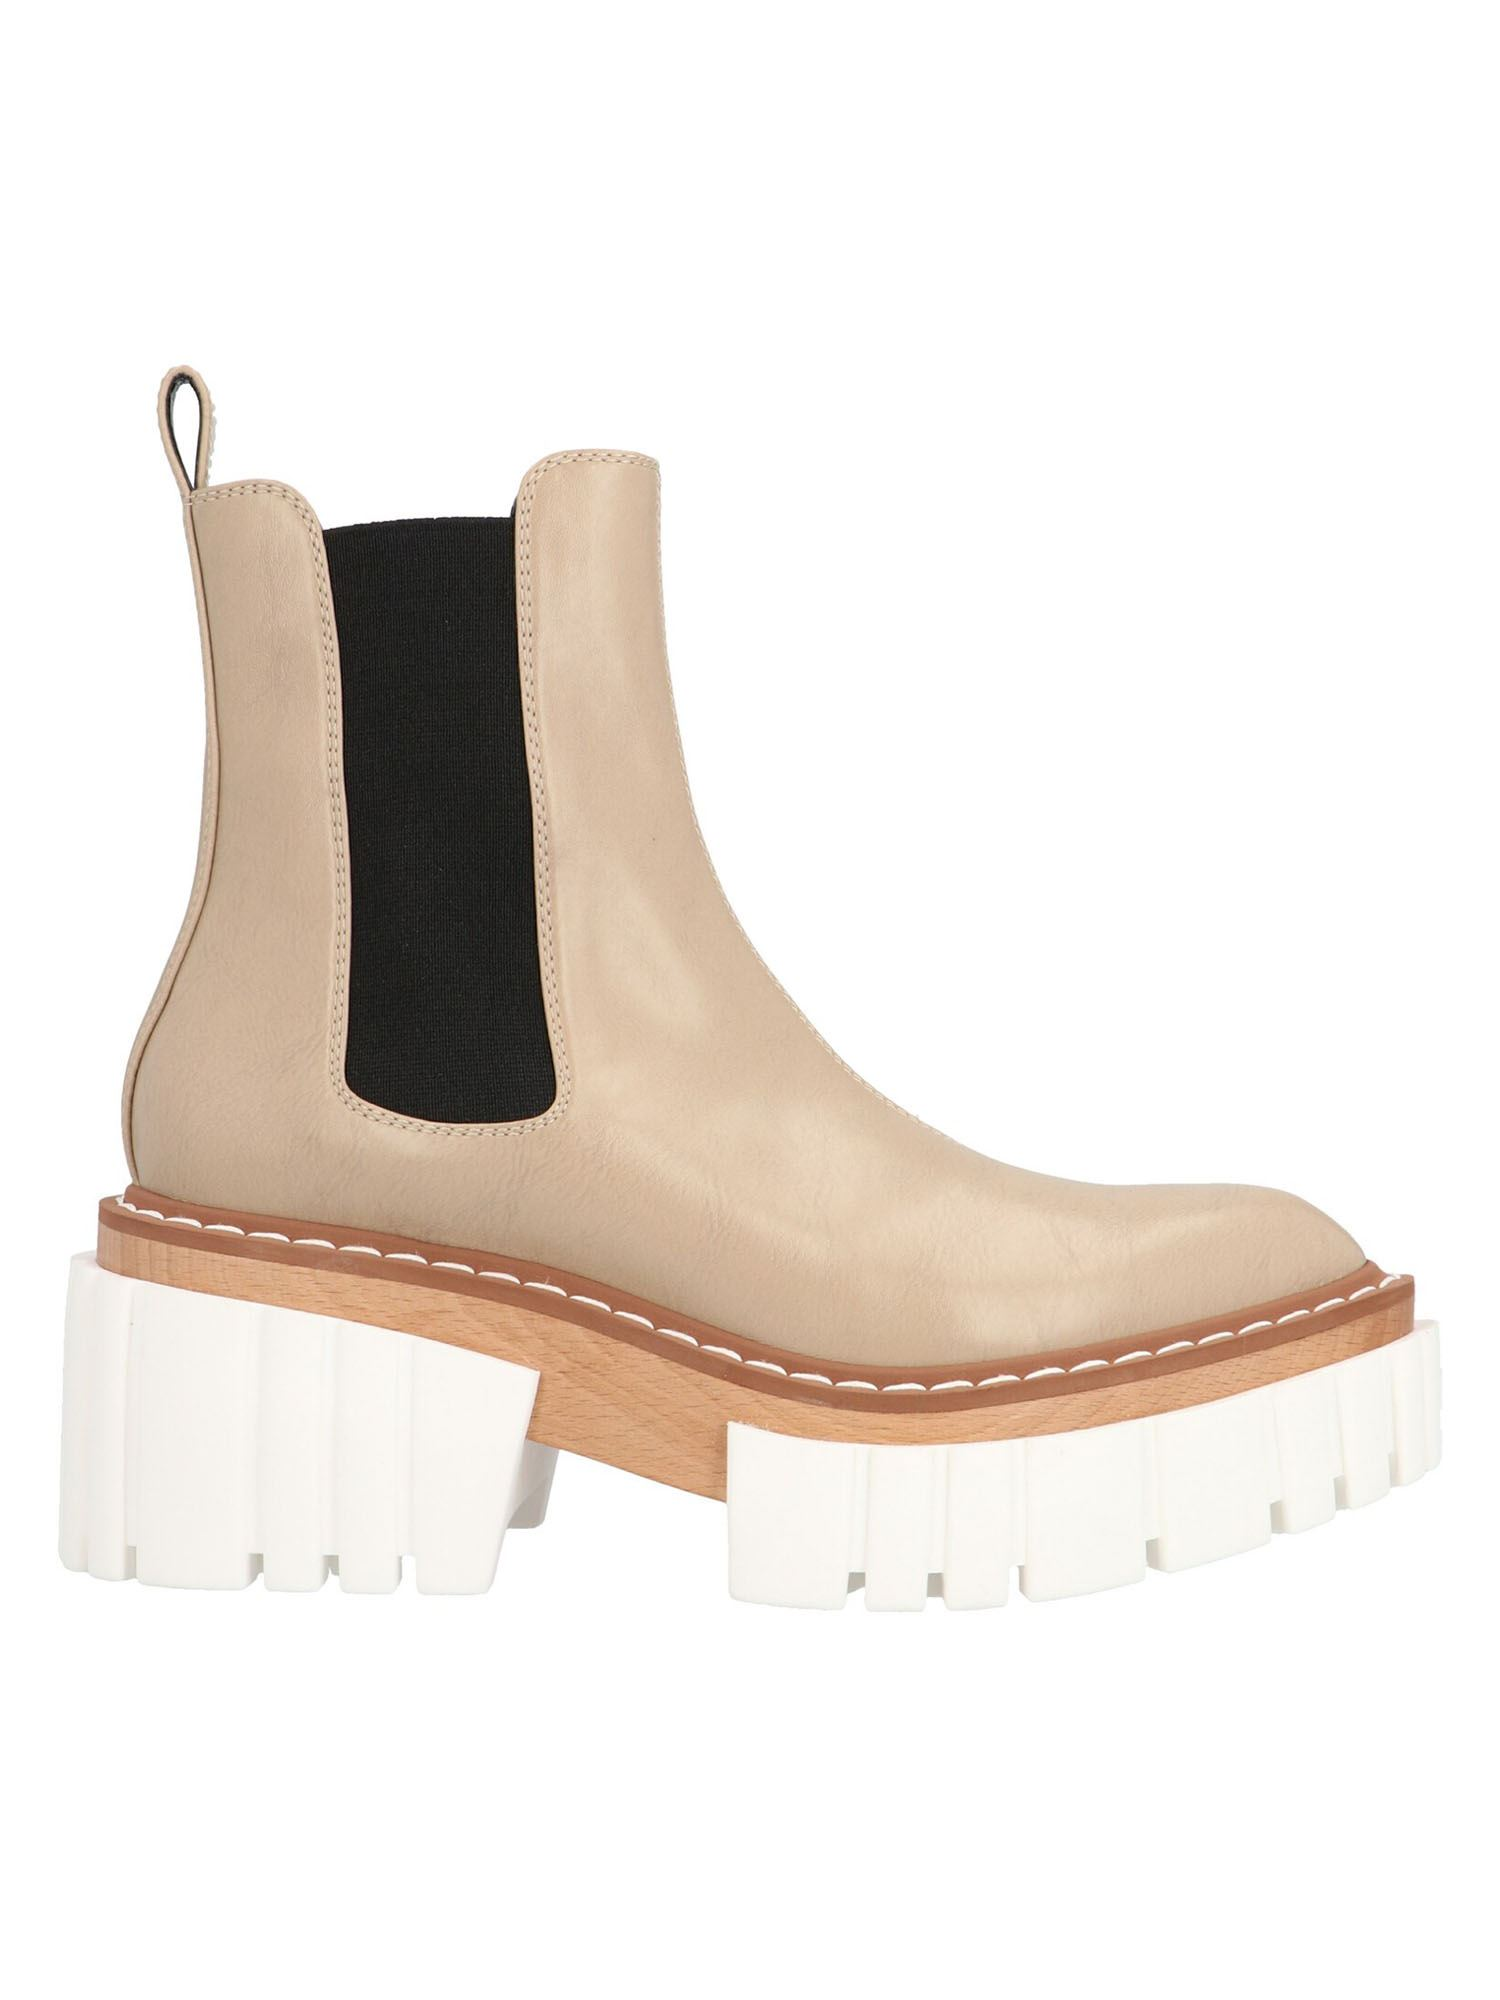 Stella Mccartney STELLA MCCARTNEY EMILIE ANKLE BOOTS IN SAND COLOR